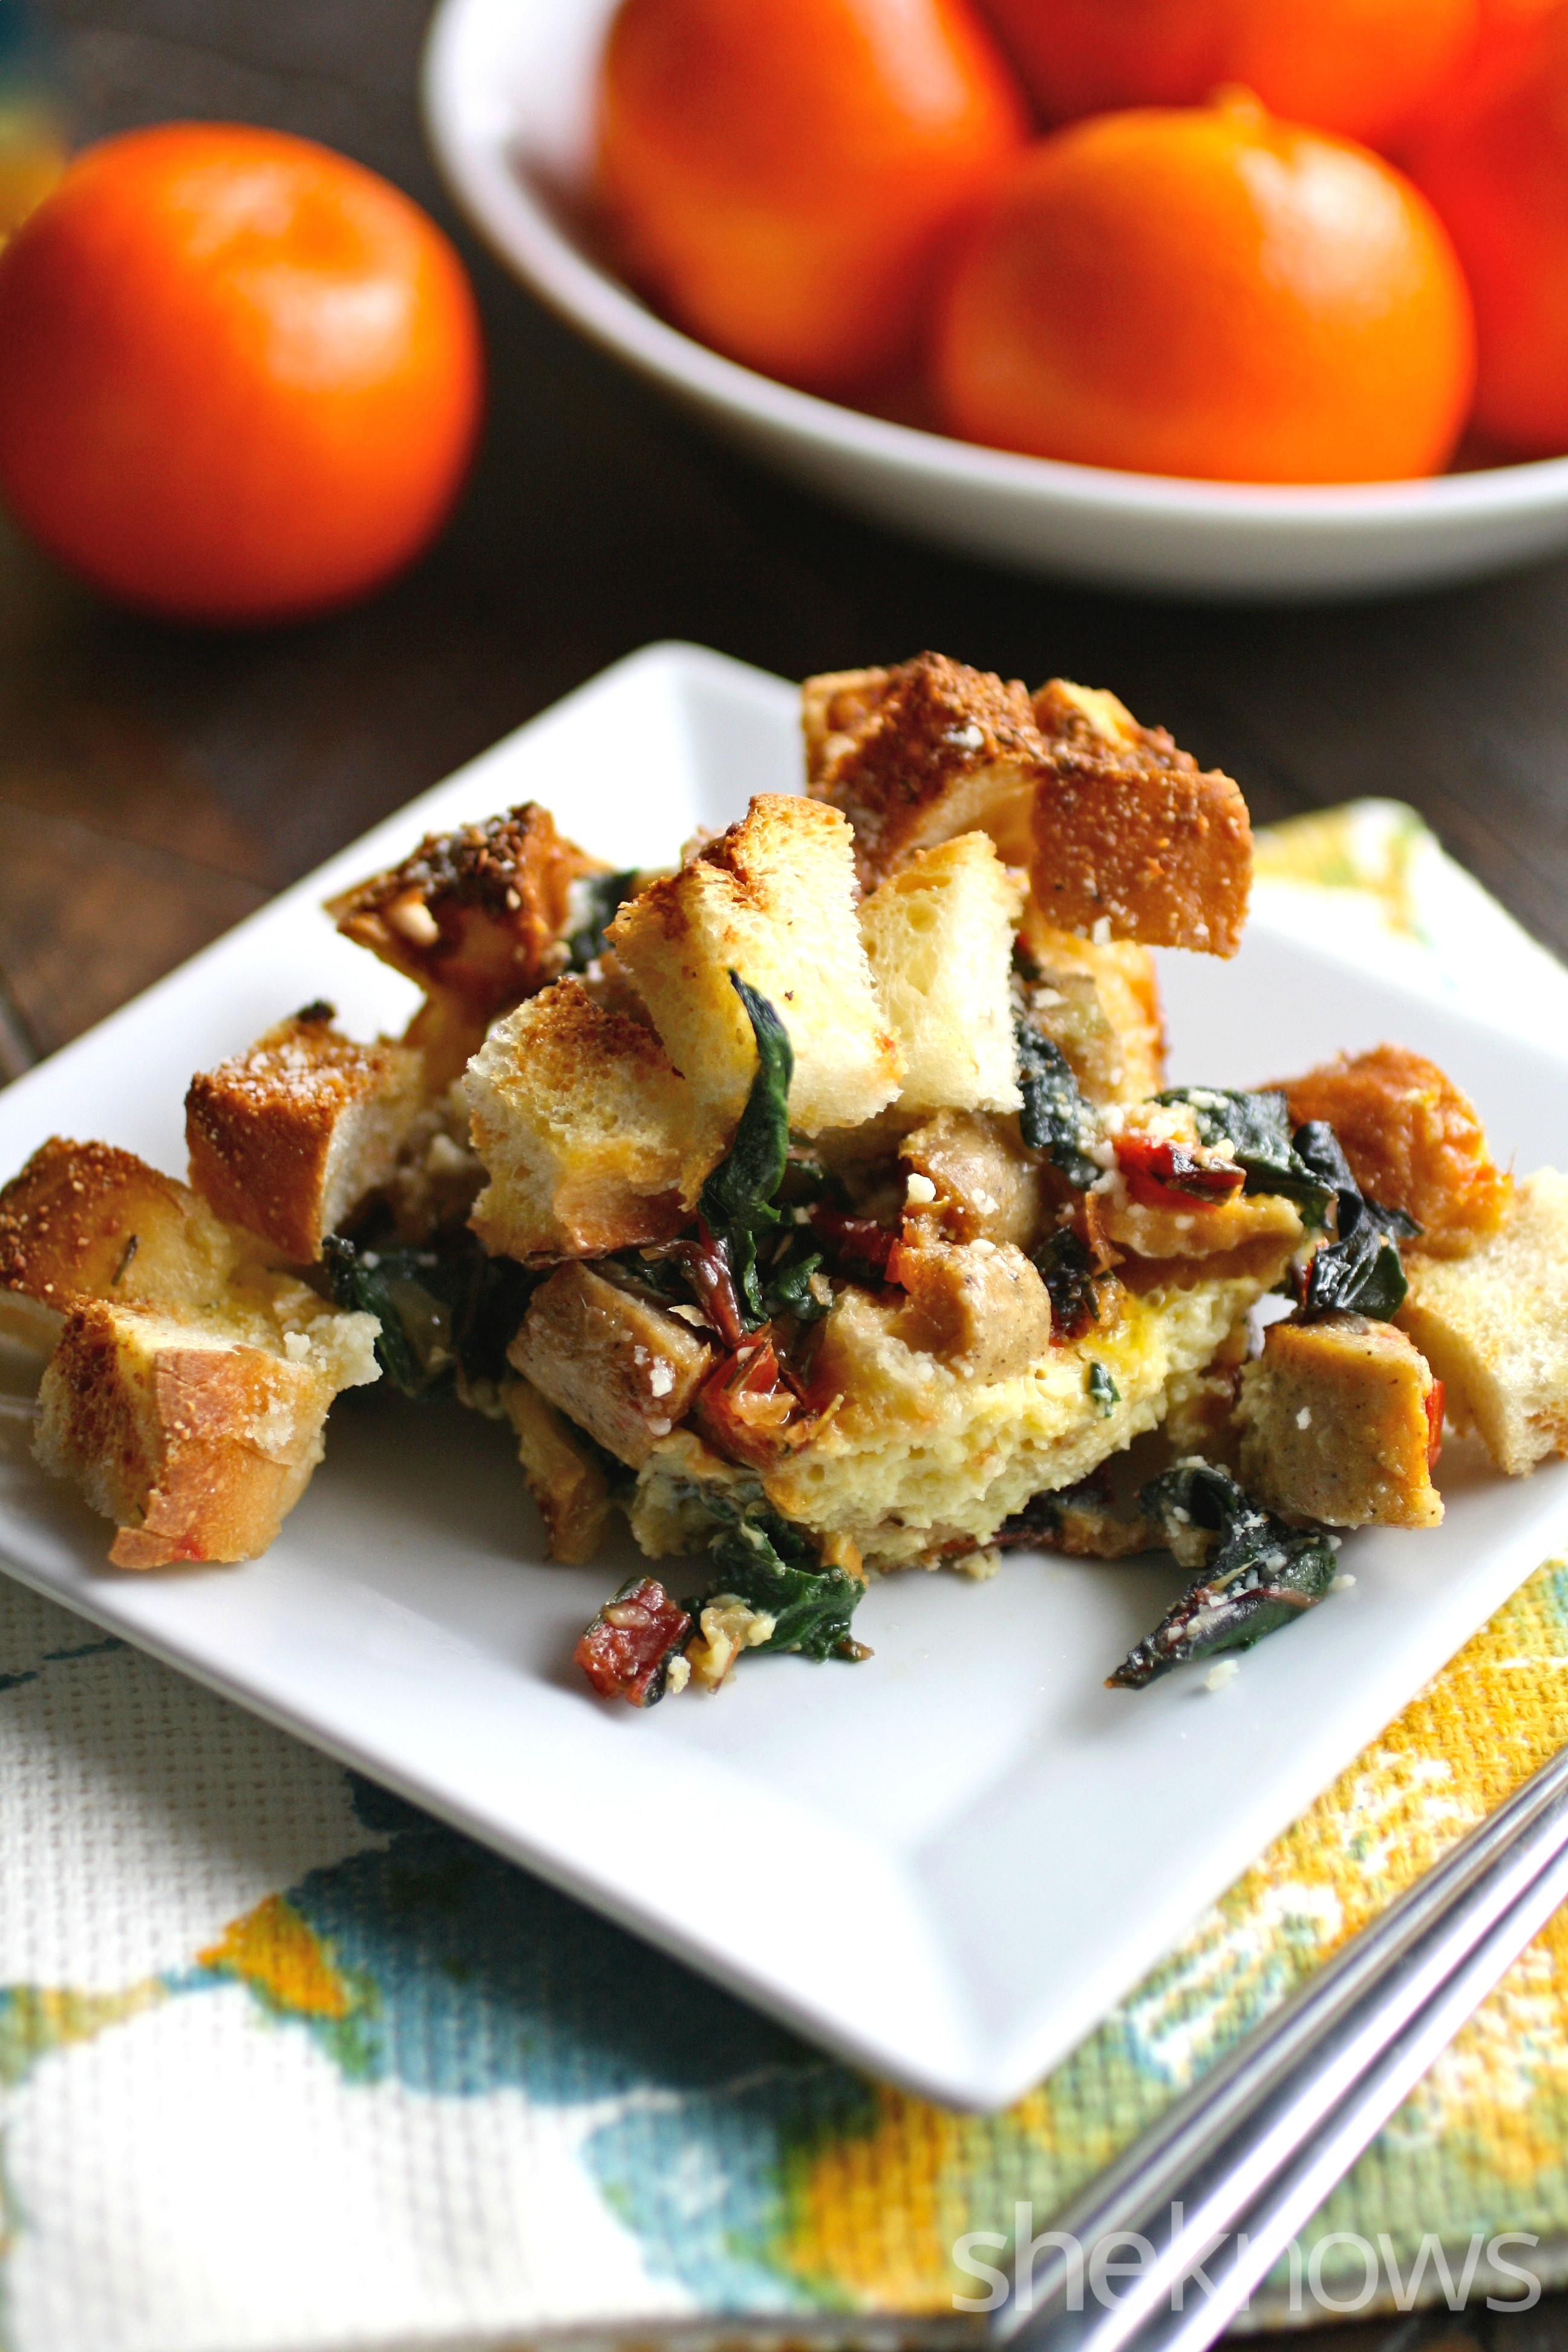 You'll love how amazing this overnight sausage and Swiss chard strata is for breakfast or brunch!